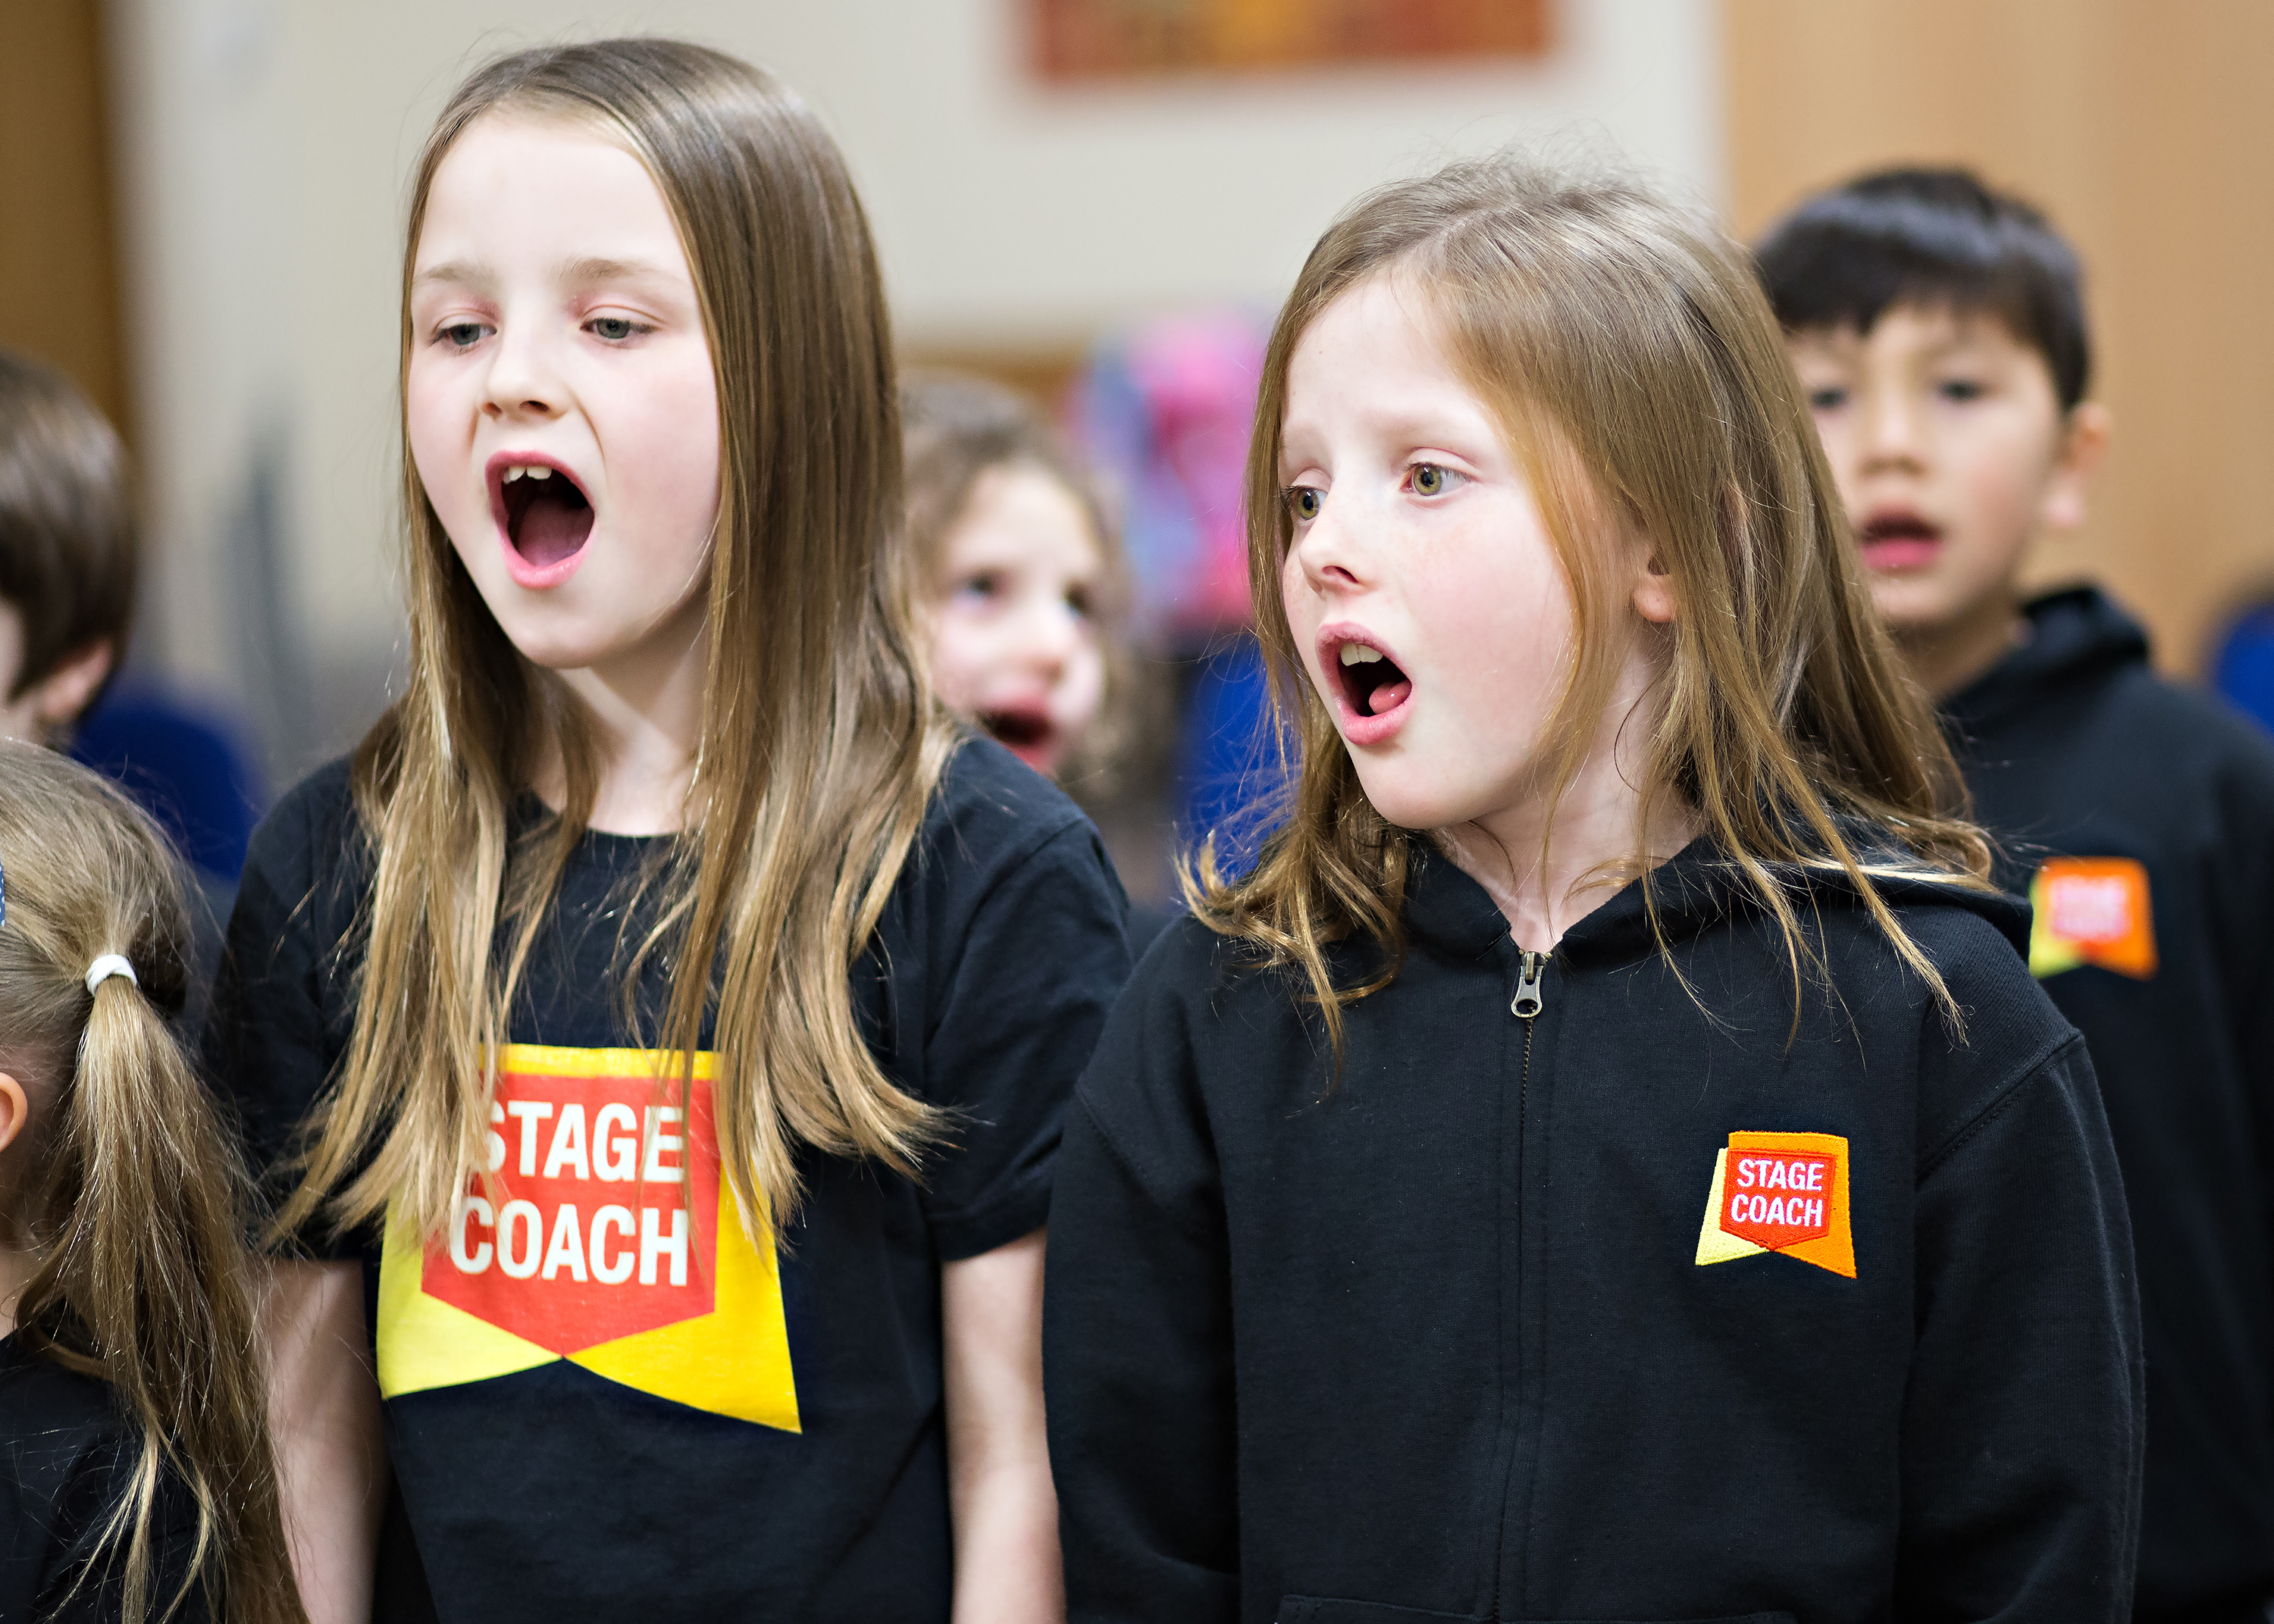 singing class at Stagecoach